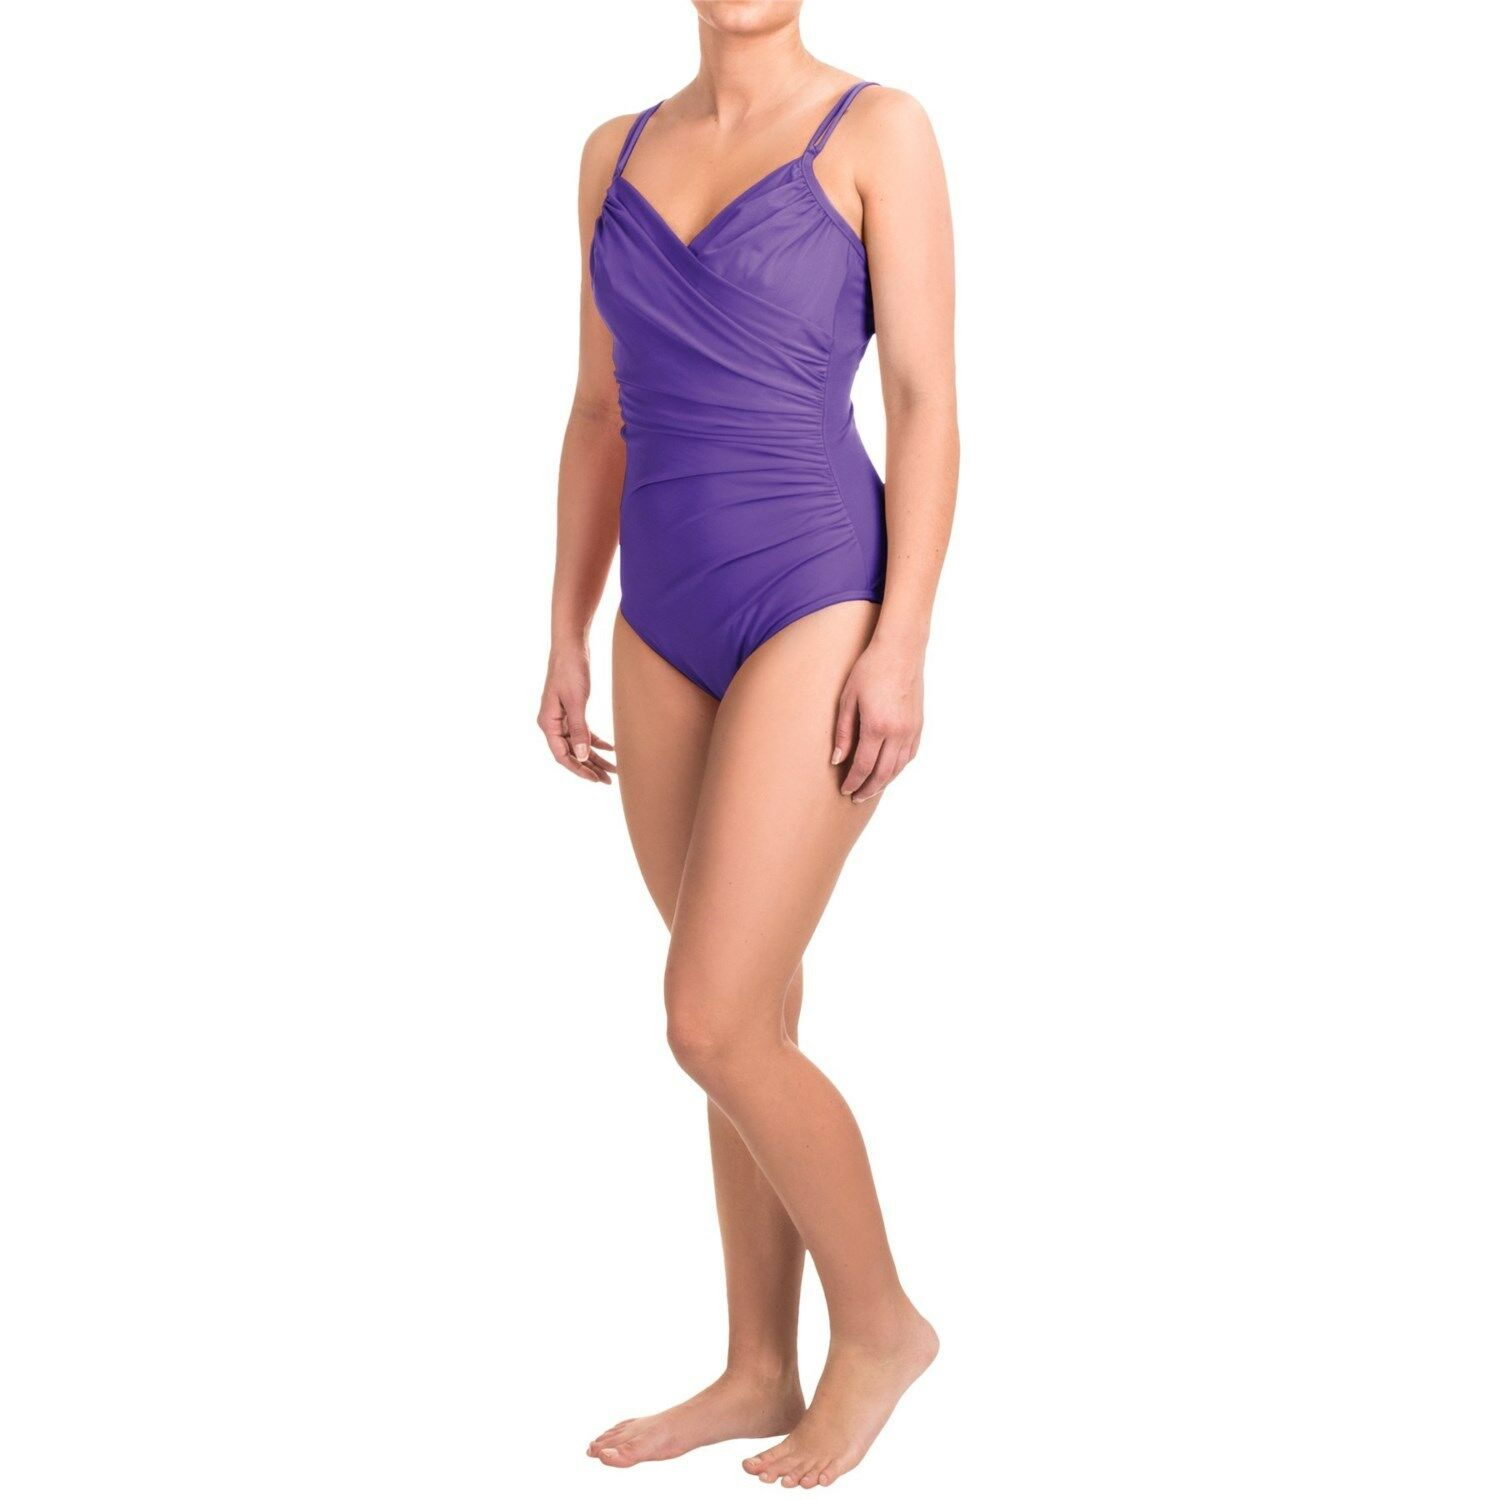 Orig.  152 Miraclesuit 14 44 Must Haves Captiva Swimsuit Double Strap Purple